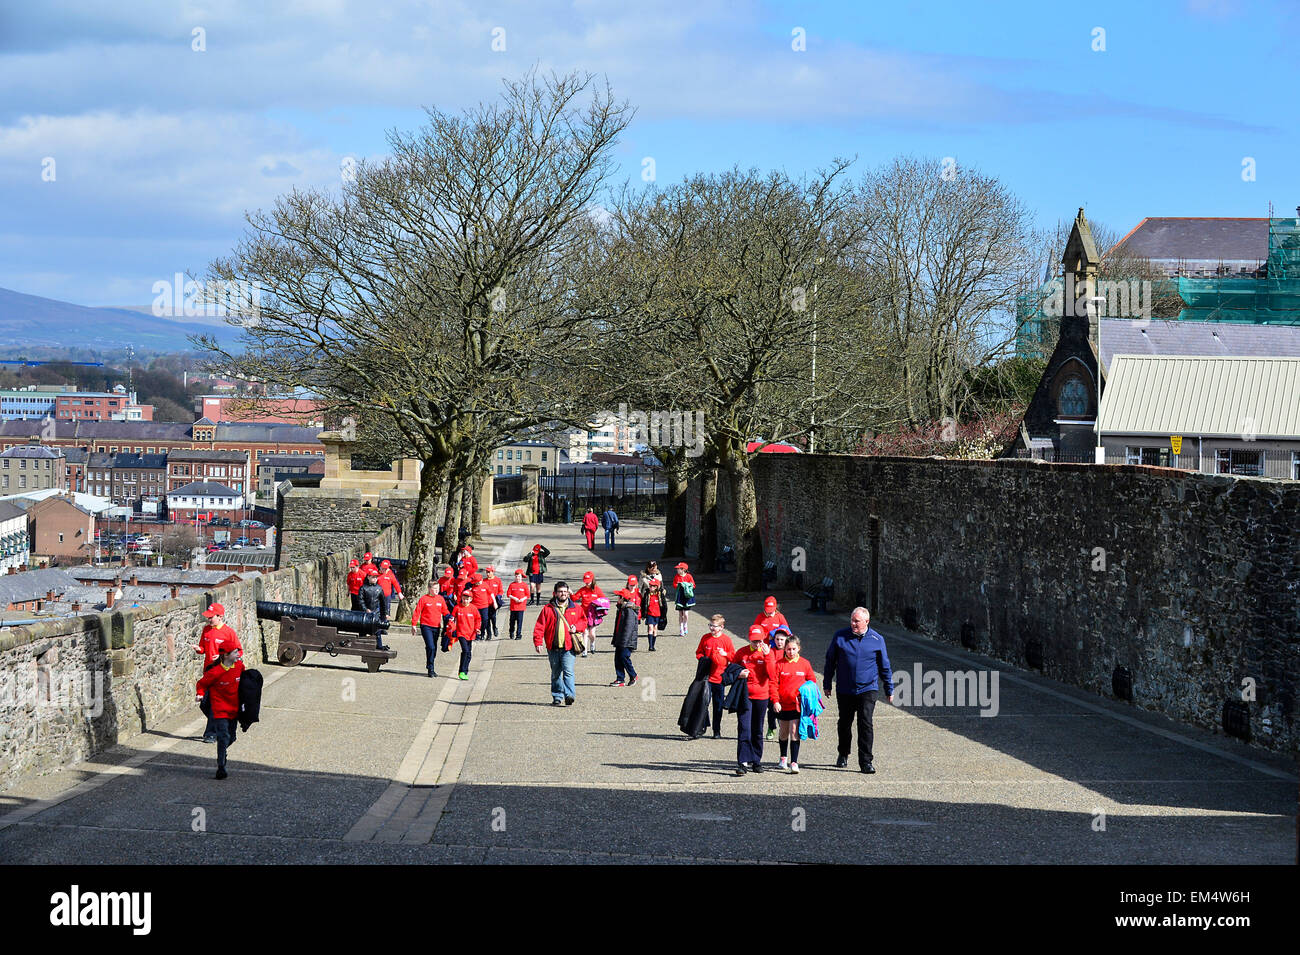 Londonderry, Northern Ireland. 16th April, 2015. UK weather: Sunny weather, School children enjoy the sunshine on - Stock Image